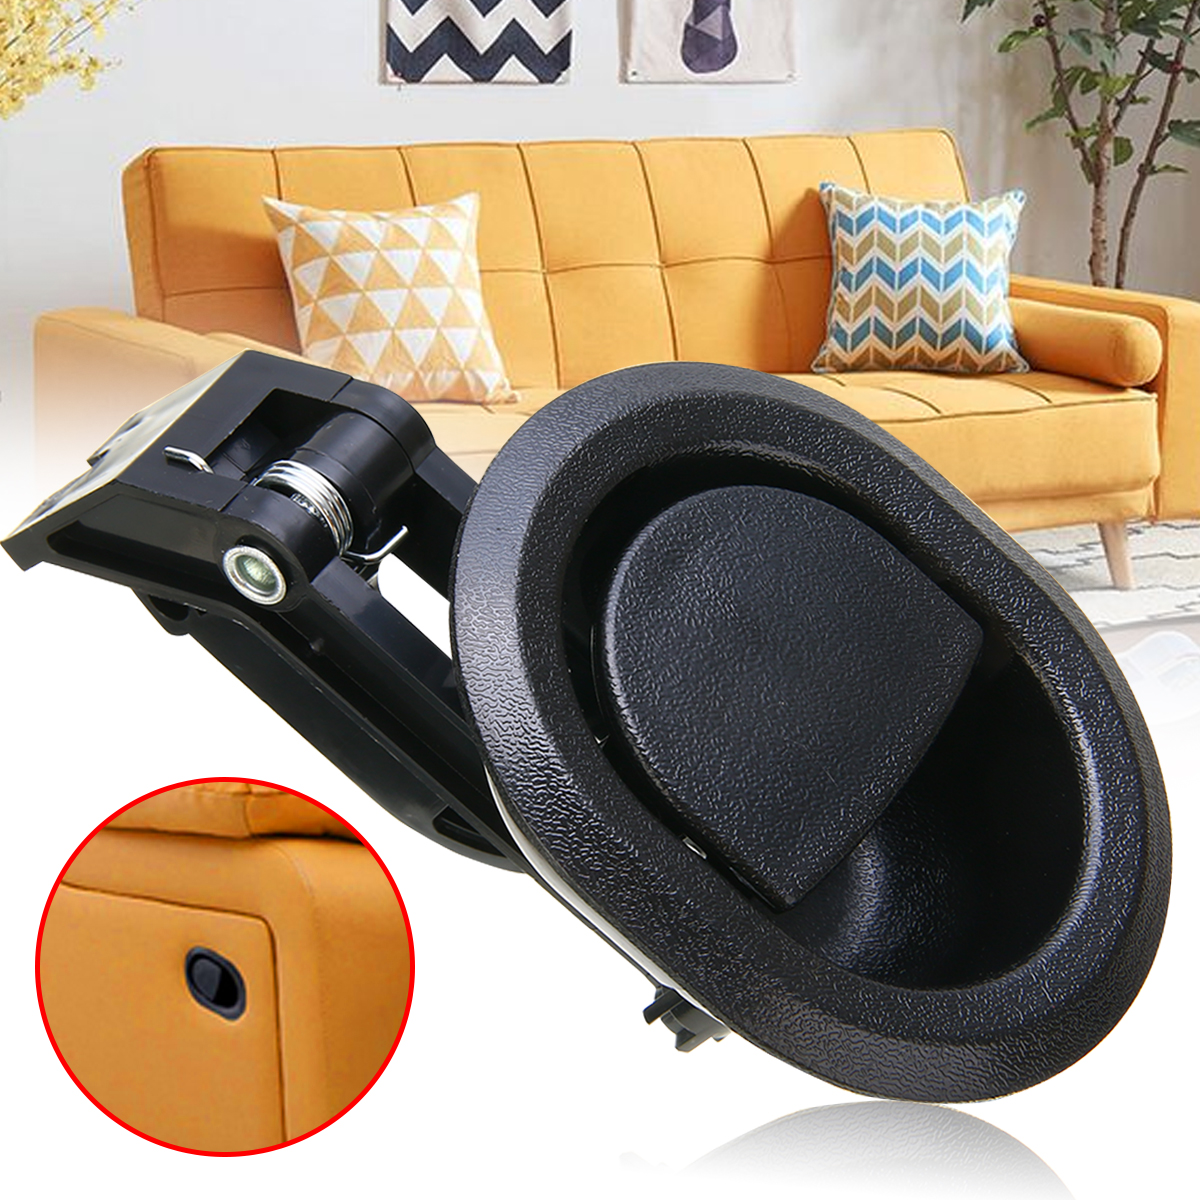 1pc Hard Plastic Release Lever Handle Black Cabinet Pulls Replacement Sofa Recliner Release Pull Handle For Oval Recliner Chair1pc Hard Plastic Release Lever Handle Black Cabinet Pulls Replacement Sofa Recliner Release Pull Handle For Oval Recliner Chair